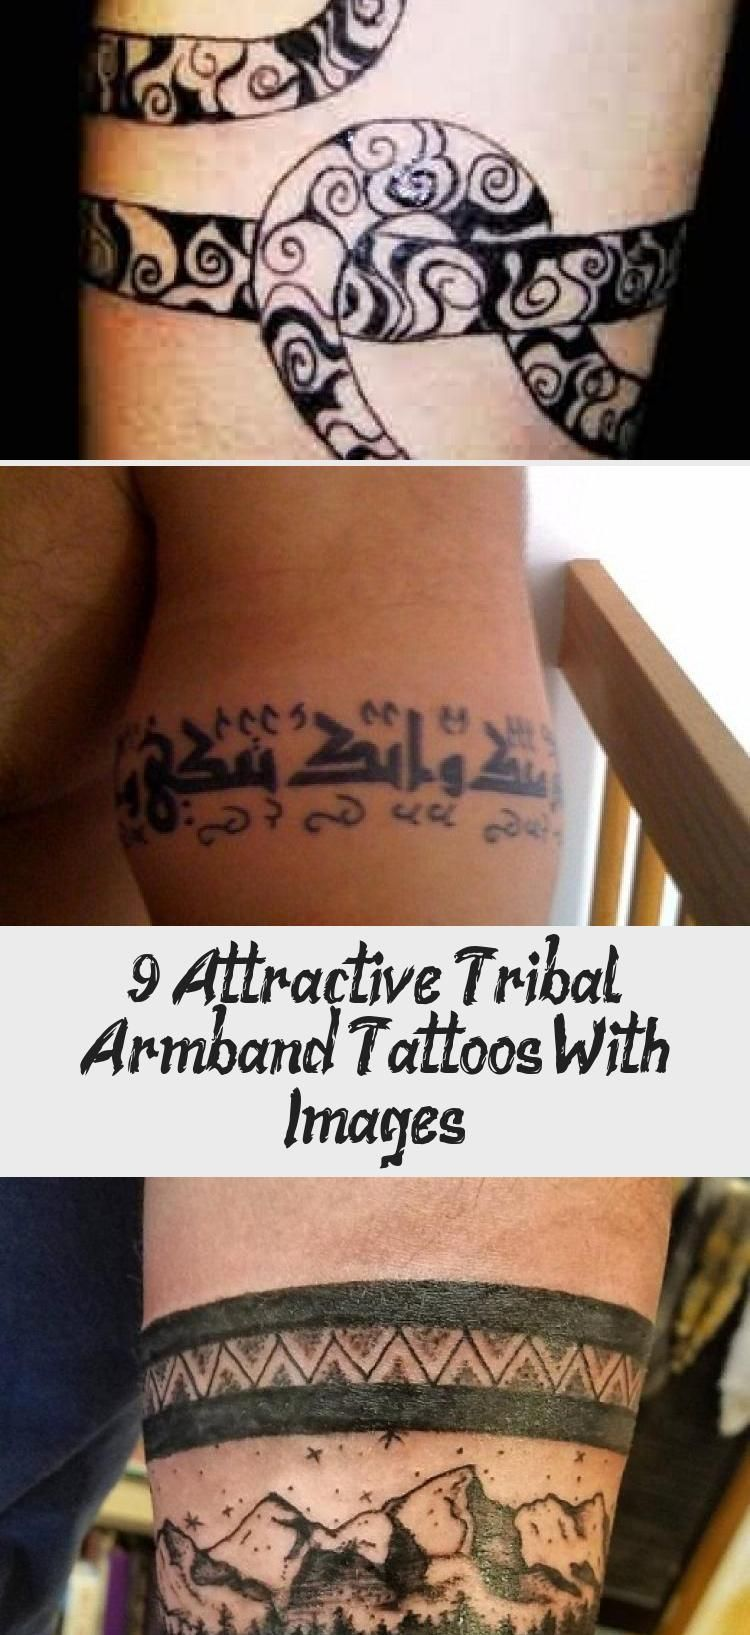 9 Attractive Tribal Armband Tattoos With Images Armtattoosformenfamily Armtatt 9 Attractive Tribal In 2020 Tribal Armband Tribal Armband Tattoo Arm Band Tattoo